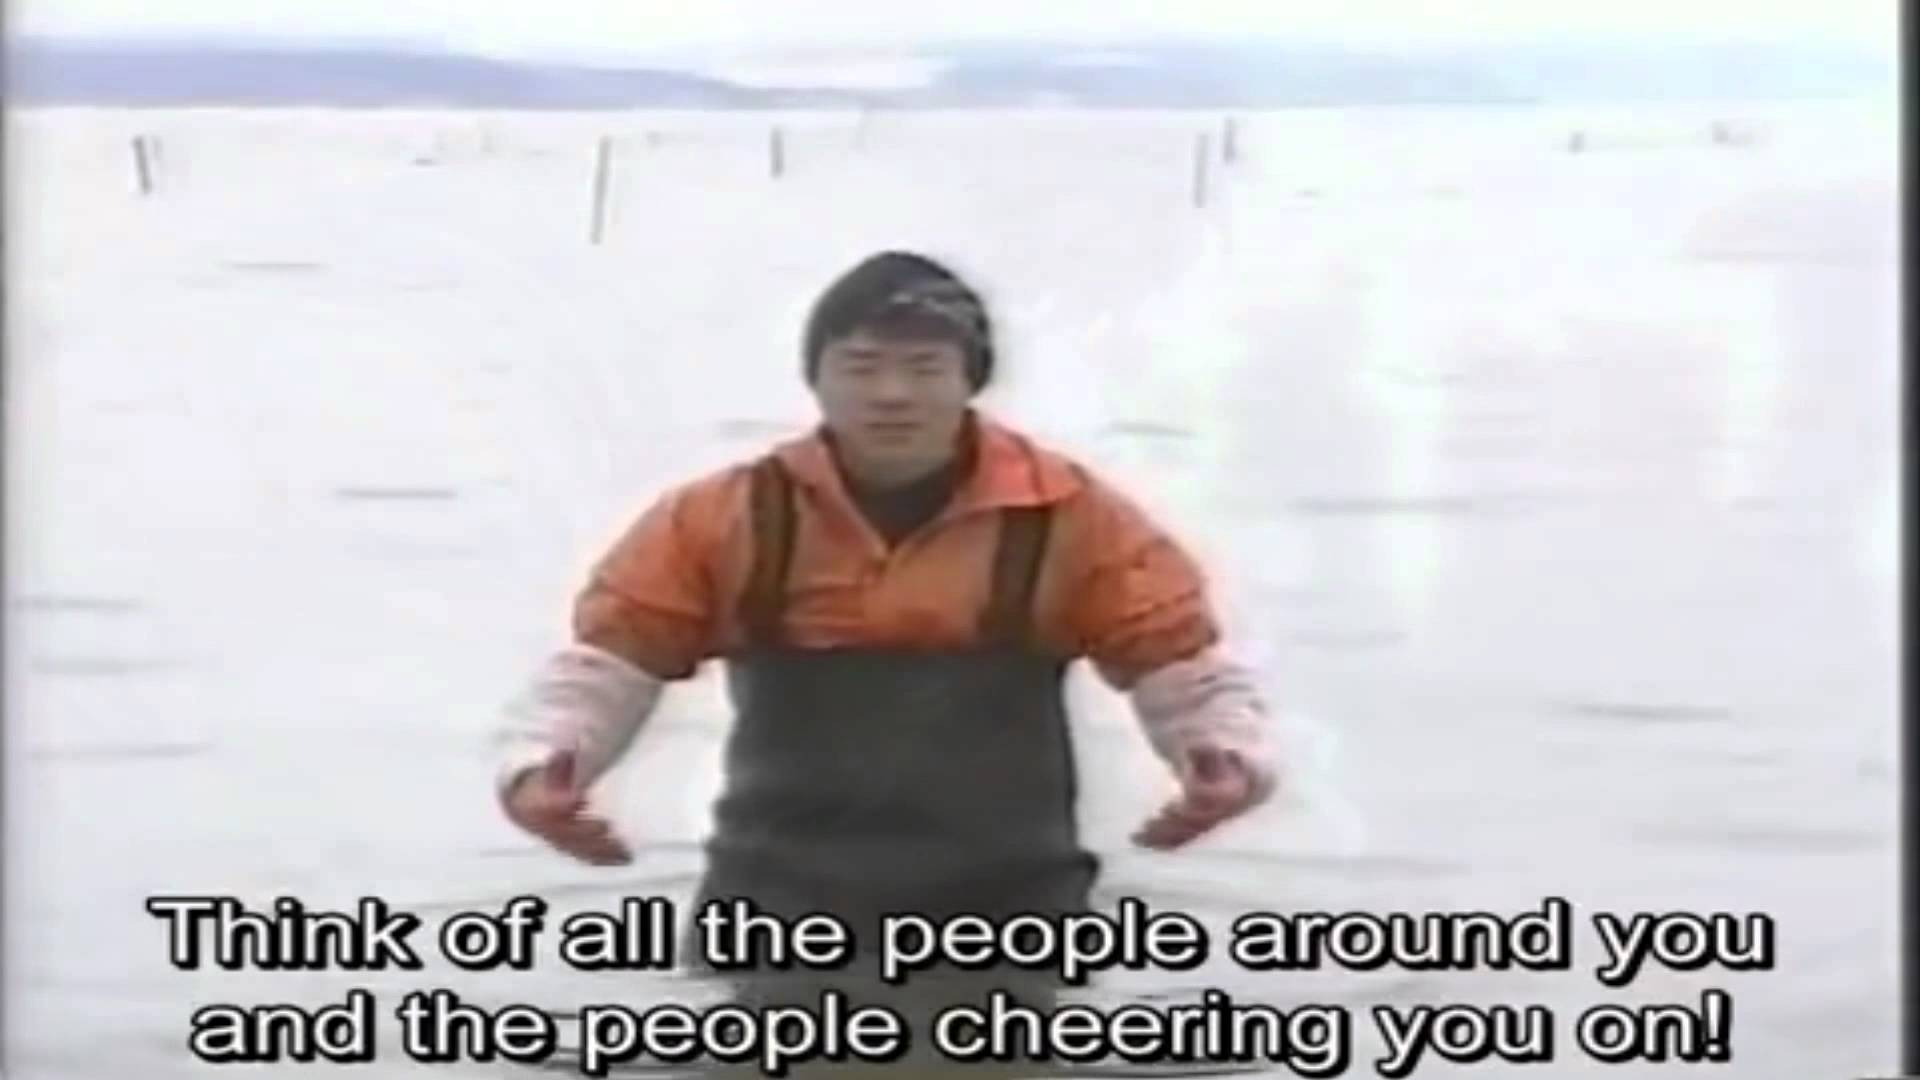 Japanese fisherman will never stop believing in you